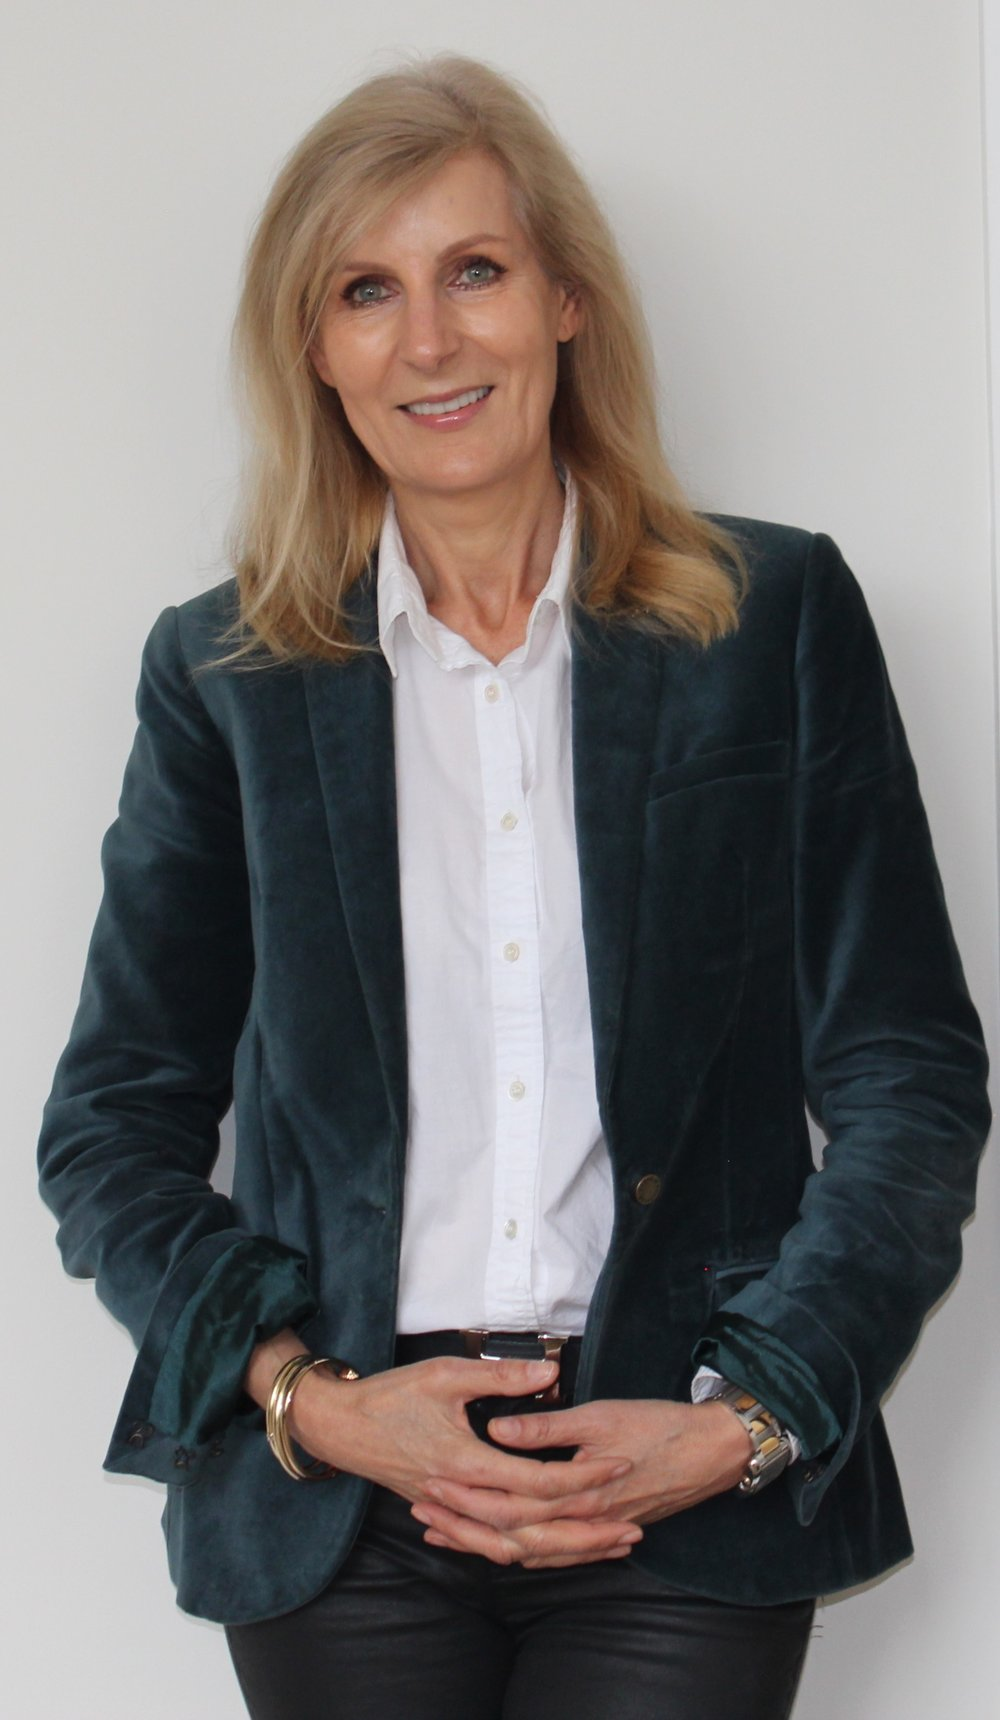 Pauline Leslie - based in Sydney and one of Australia's leading practitioners of Rapid Transformational Therapy (RTT)